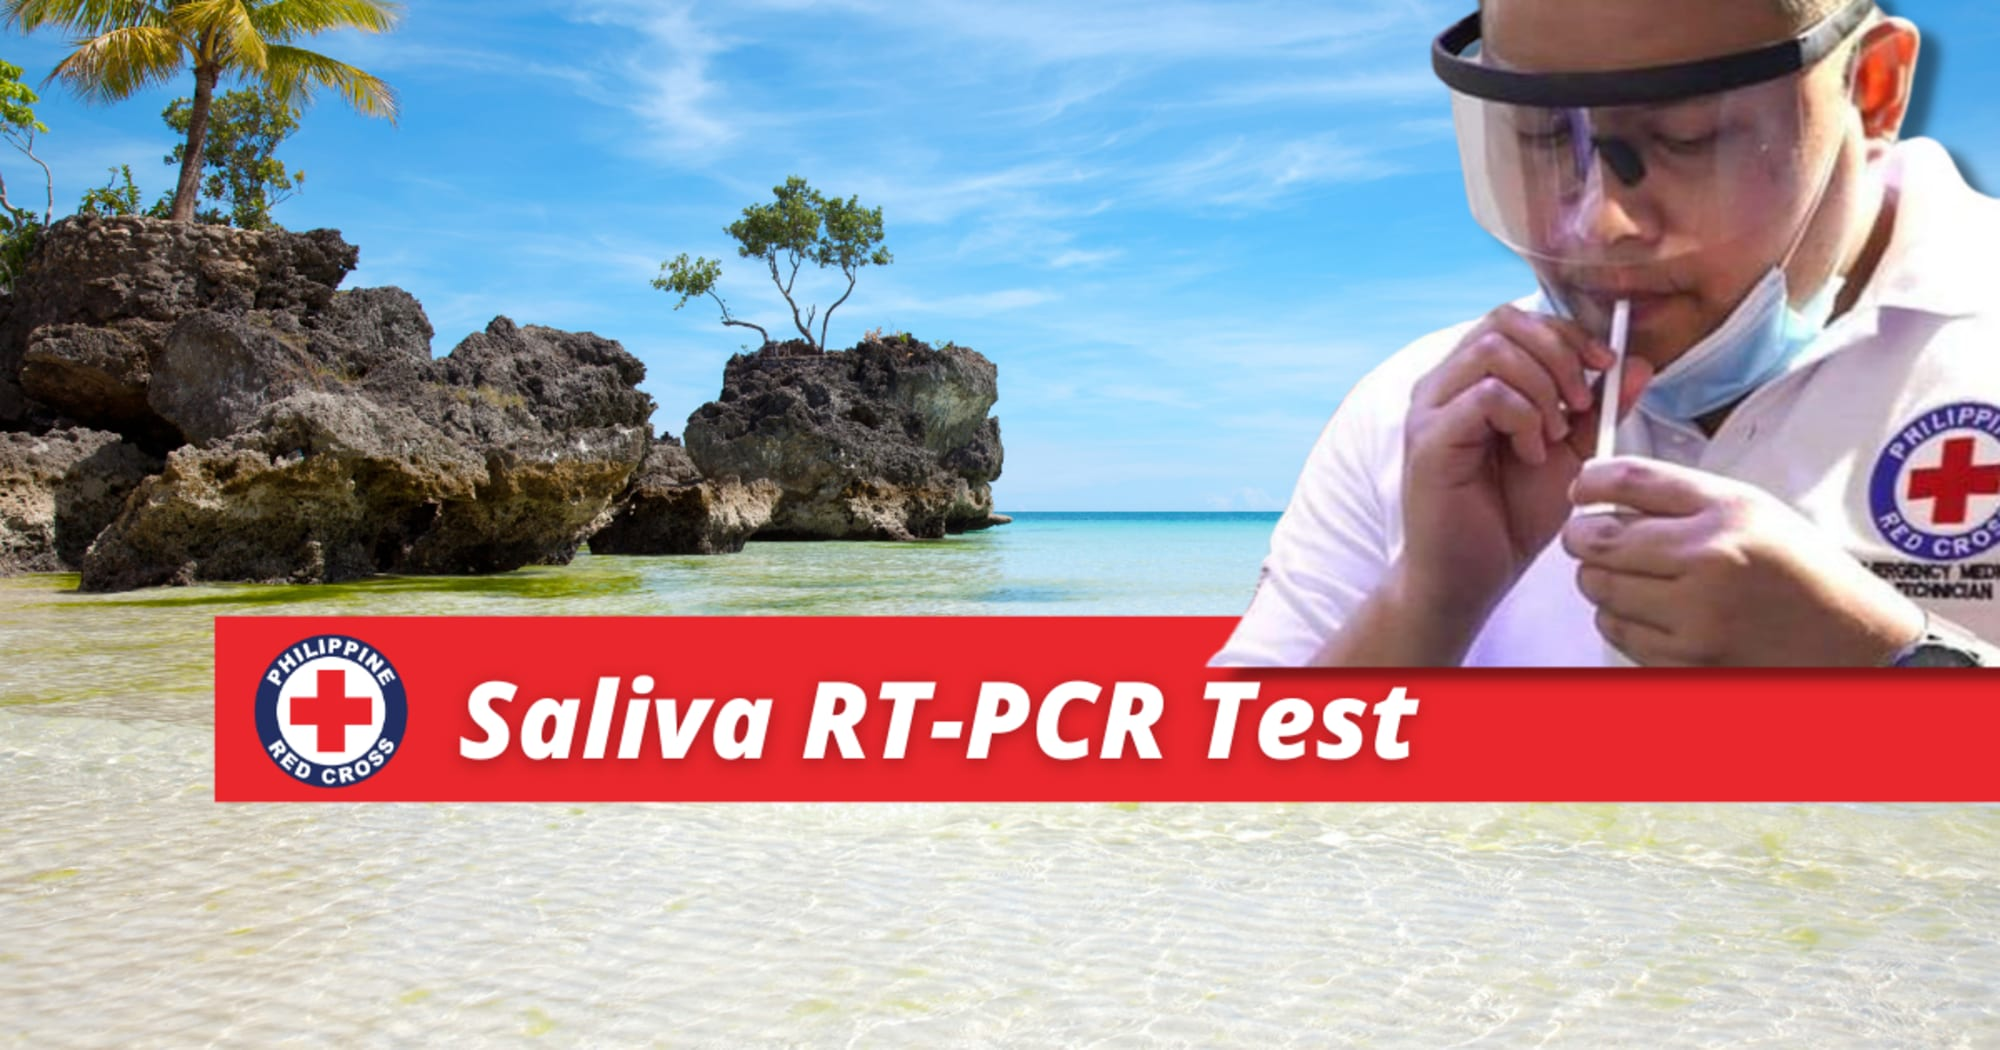 Philippine Red Cross Boracay Chapter NOW accepts Saliva based RT-PCR Testing